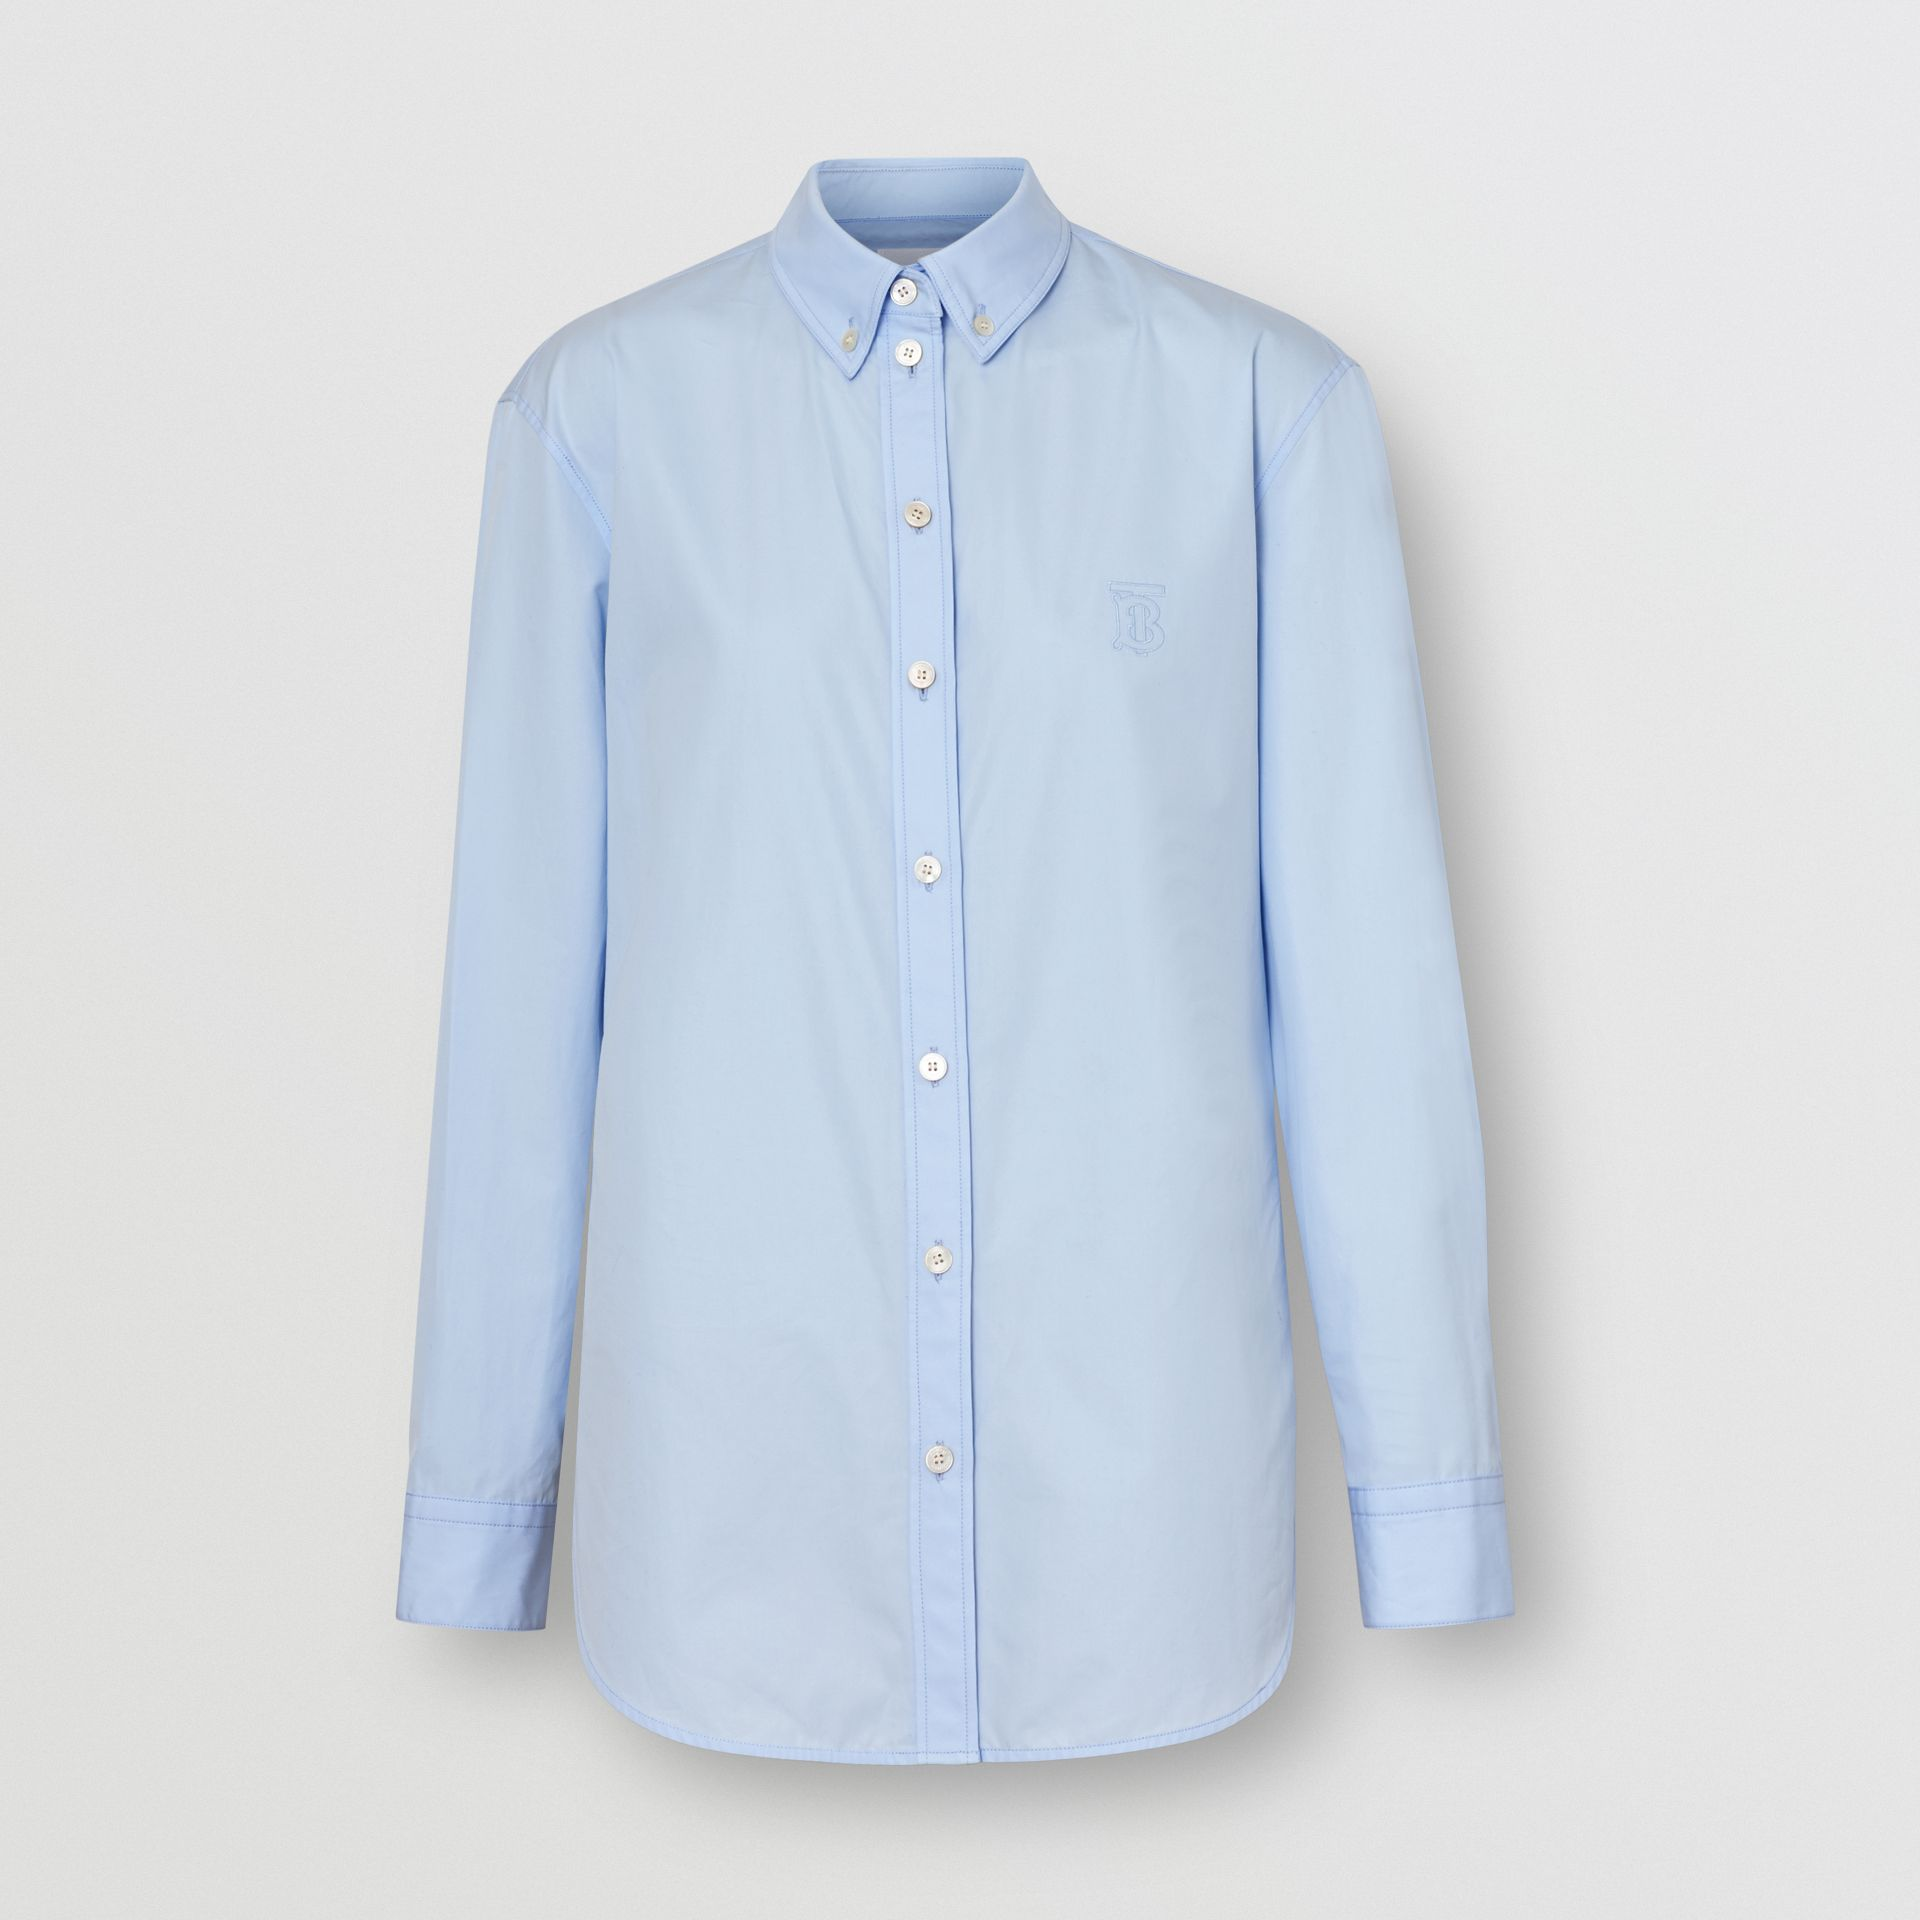 Button-down Collar Monogram Motif Cotton Shirt in Pale Blue - Women | Burberry United Kingdom - gallery image 3